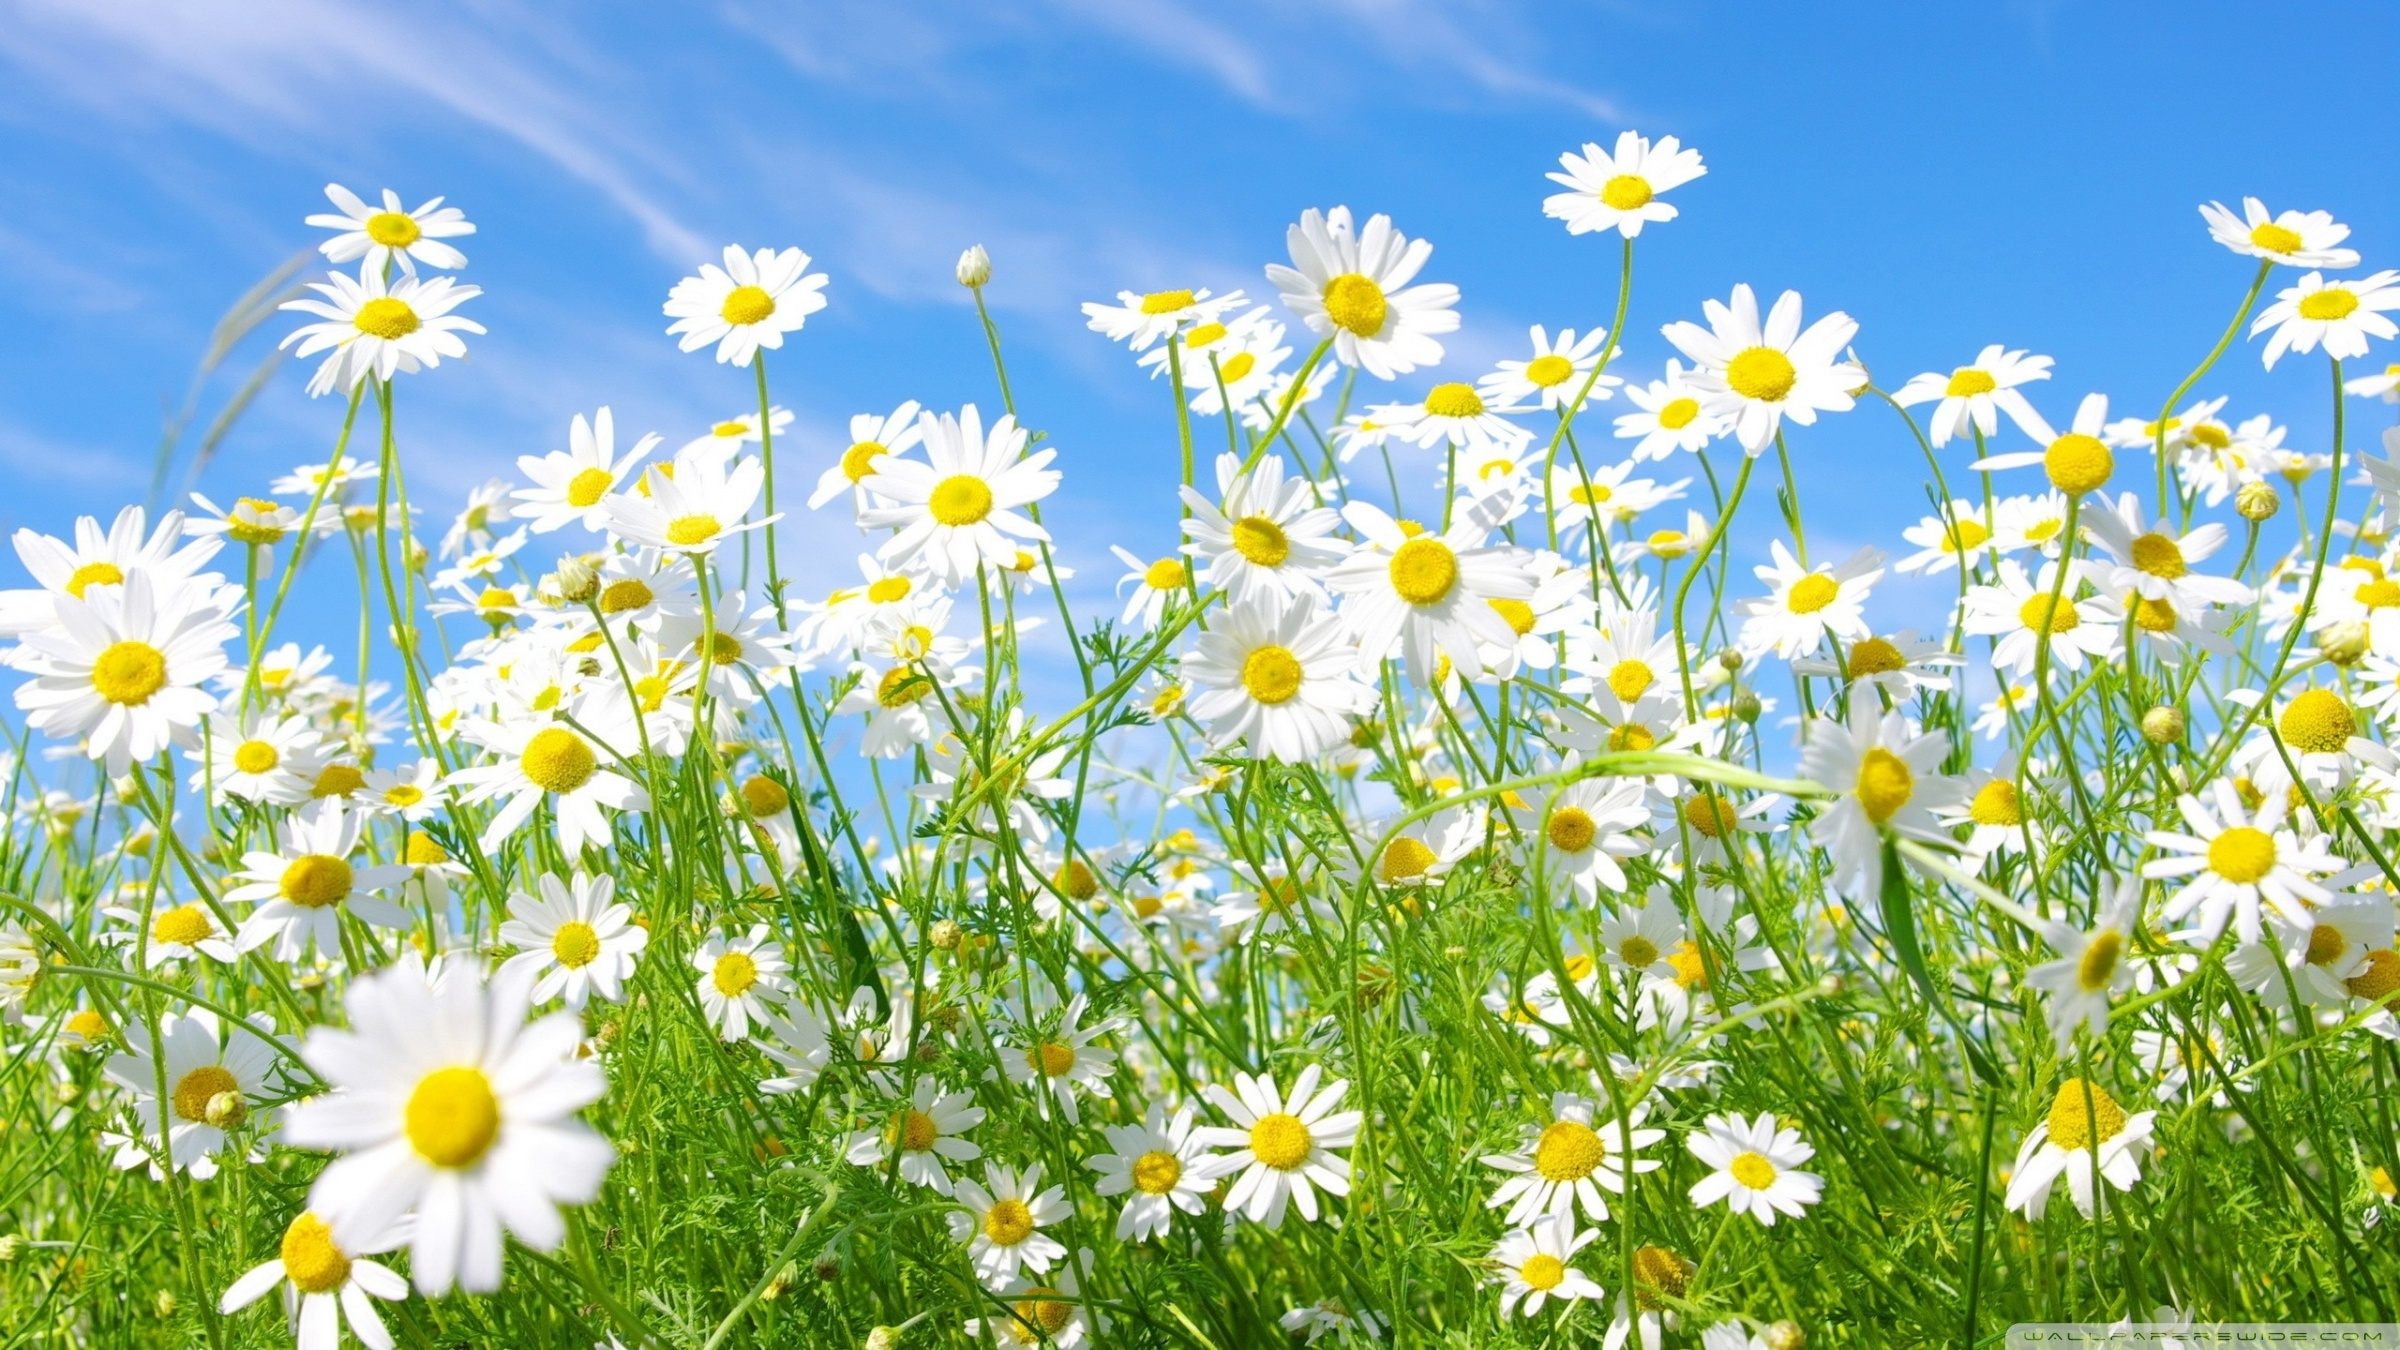 Daisies Wallpaper 10529